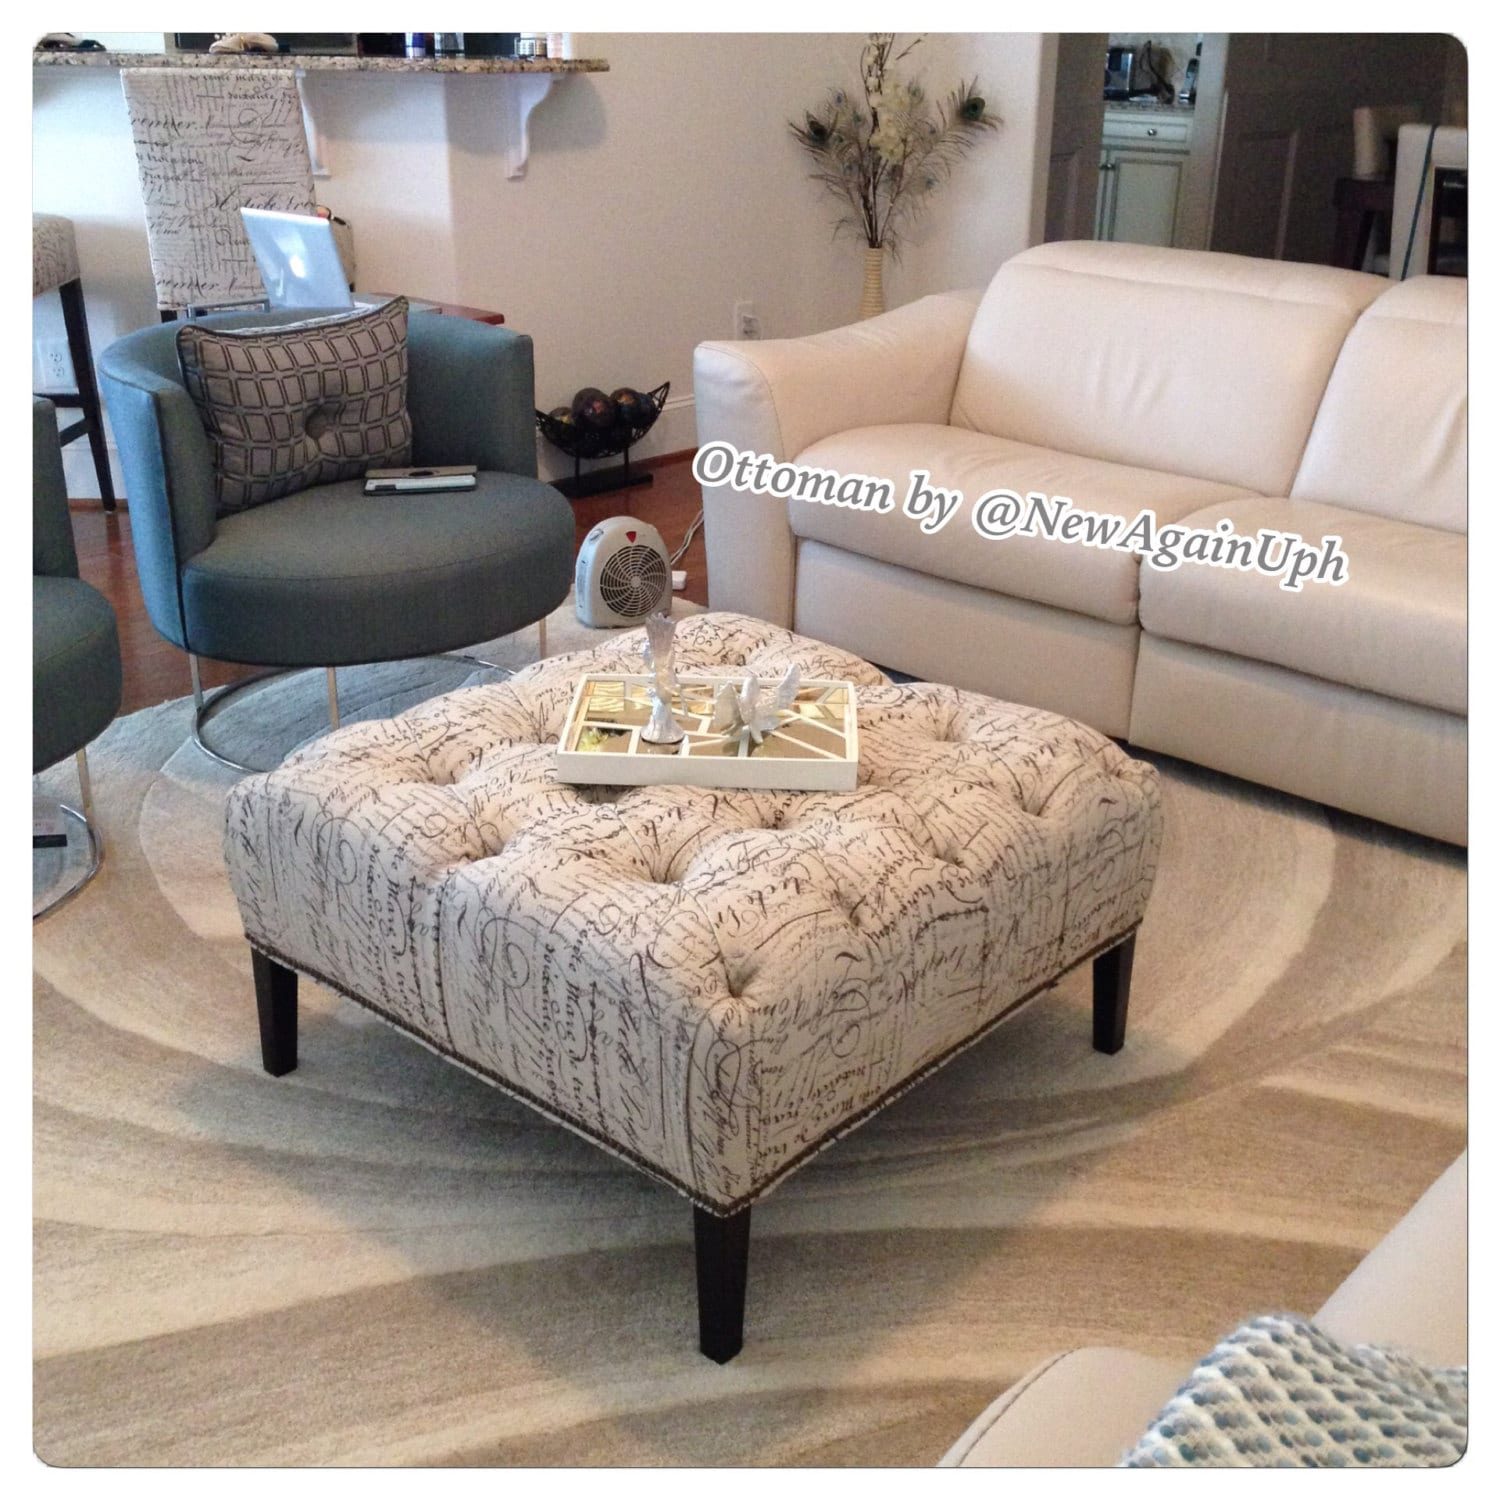 Square Ottoman Coffee Table Tufted Ottoman With Tapered Legs Nailheads And Rhinestones Square Ottoman With Nails Tufted Ottoman Tapered Legs